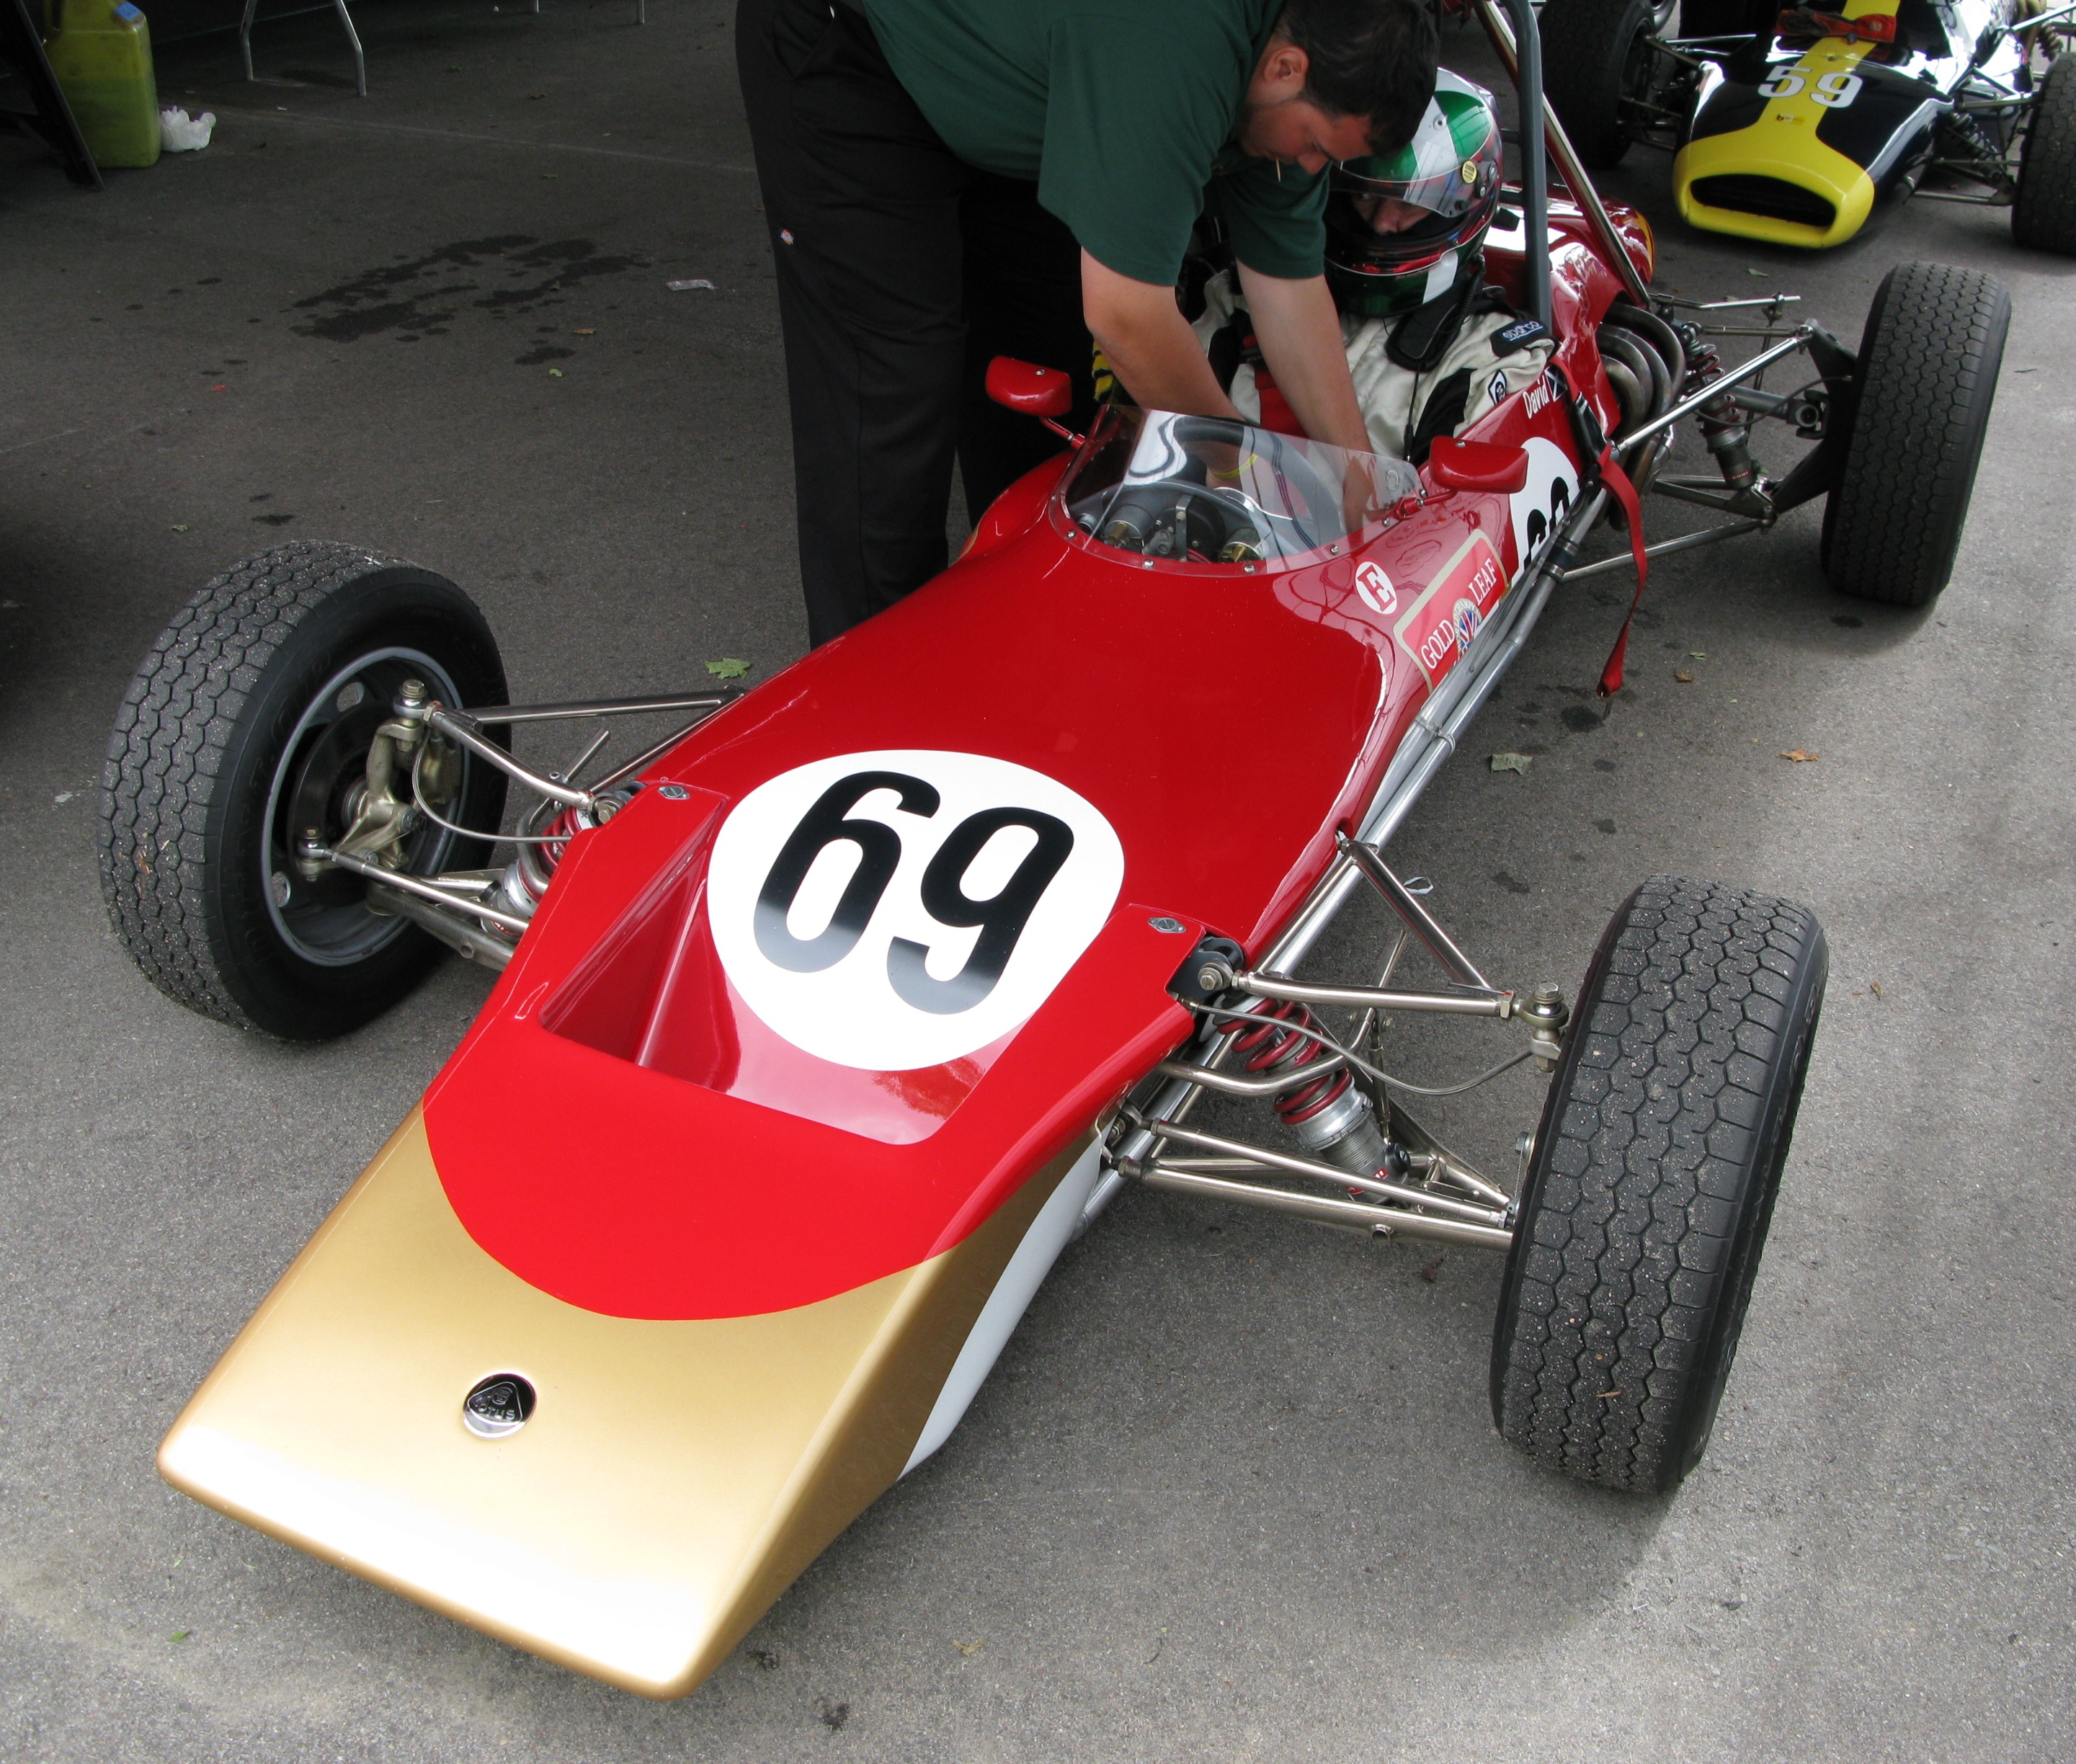 File:Lotus 69 FF Mont-Tremblant 2009.jpg - Wikimedia Commons